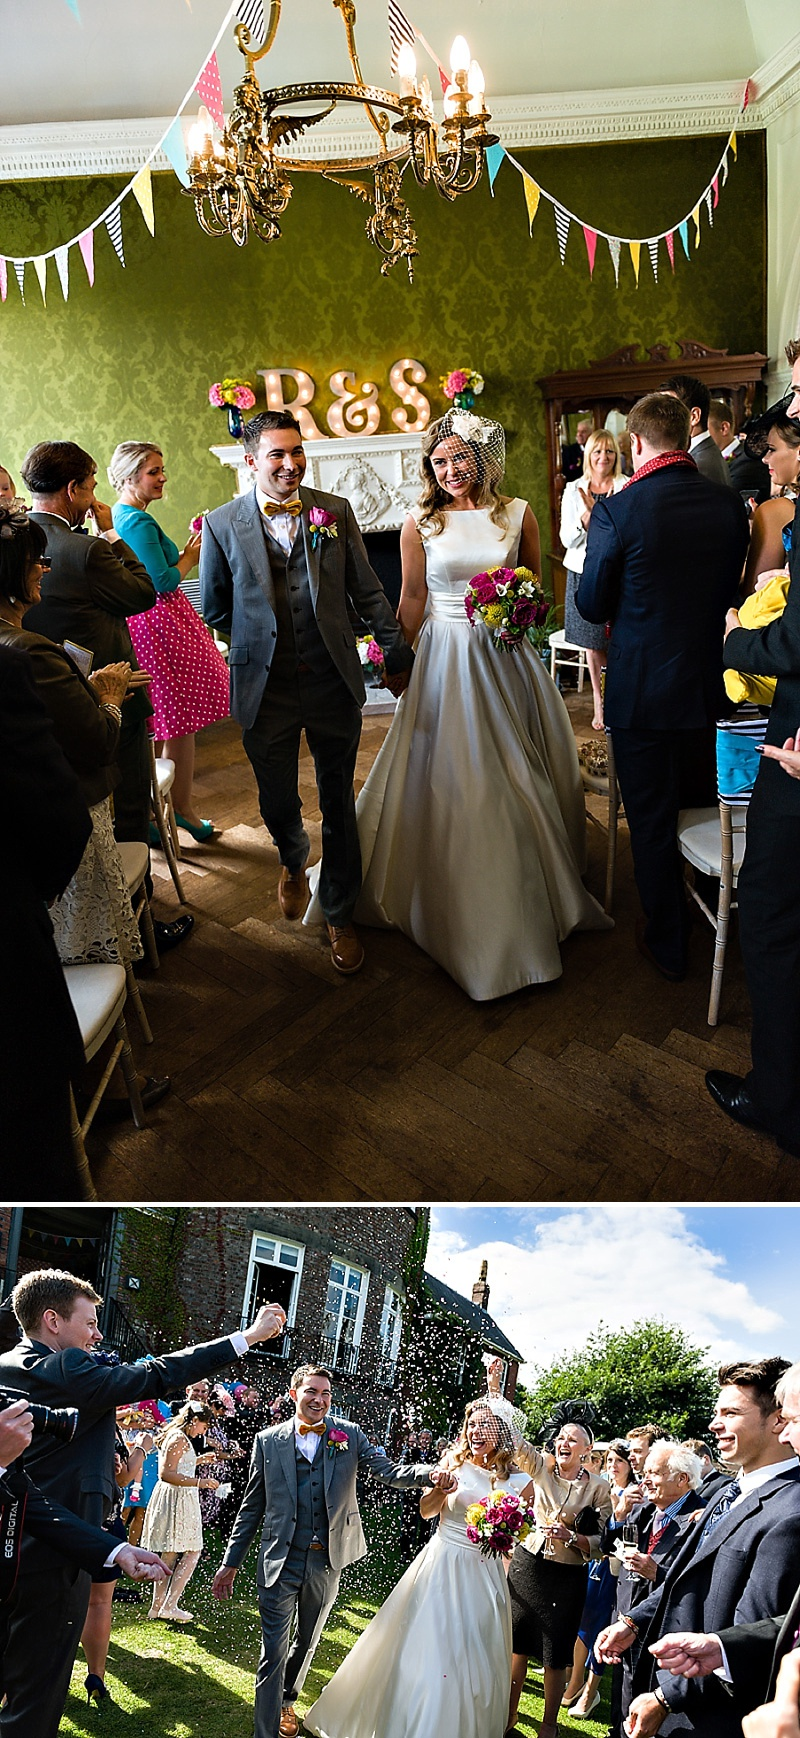 A Vintage Circus Themed Wedding With Brightly Coloured Balloons And Bunting, Gold Glittery Table Numbers, Smarties As Favours And A Carosel Cake Topper Bride In Kiki By Kurt Geiger With Images From Shoot Photography_0011